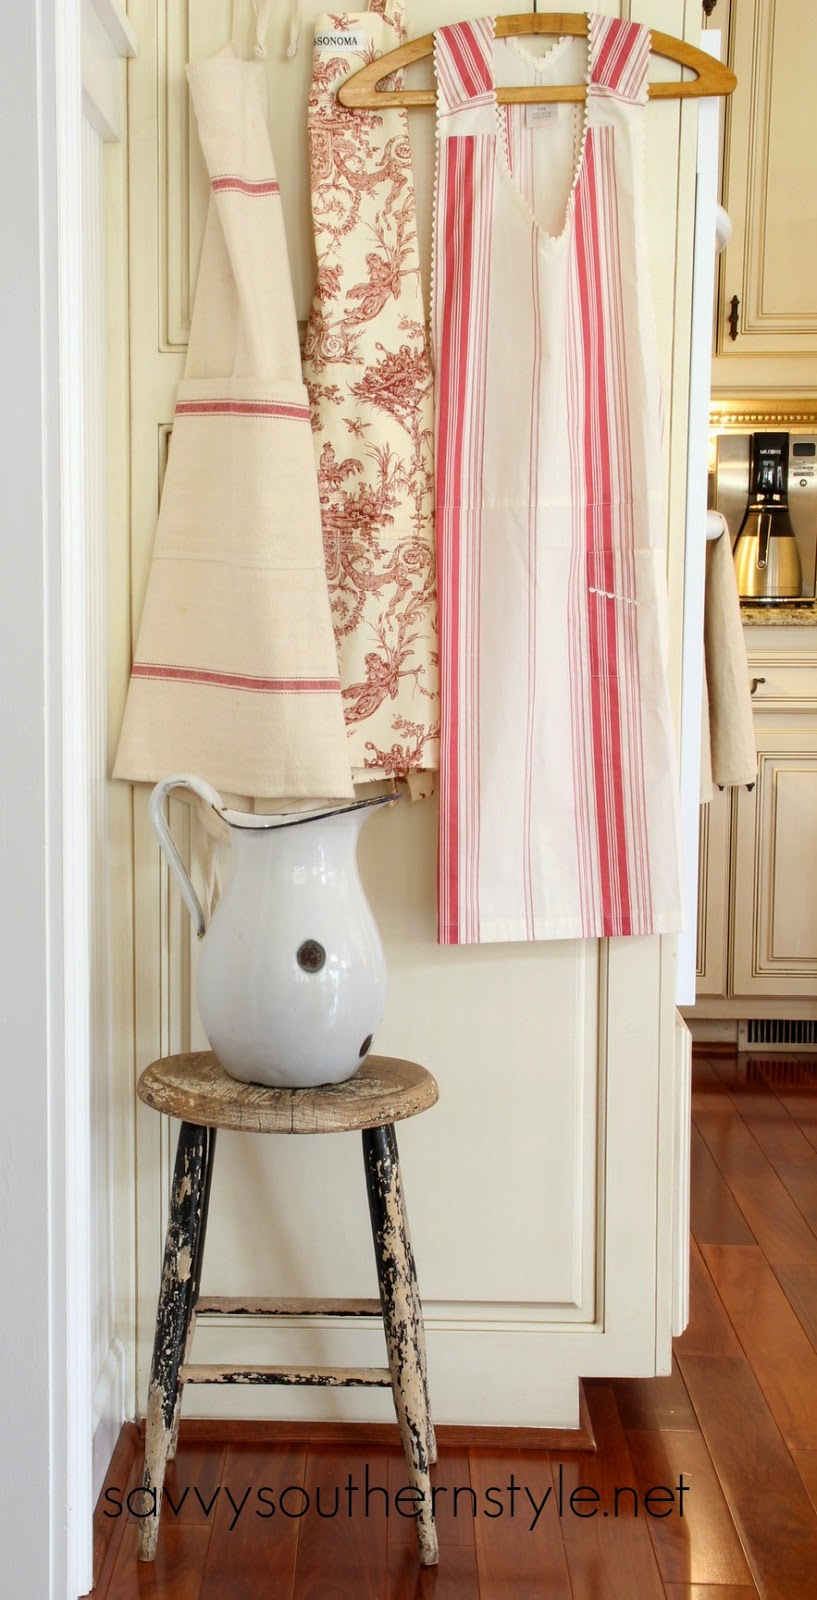 savvy southern style adding farmhouse style in the kitchen